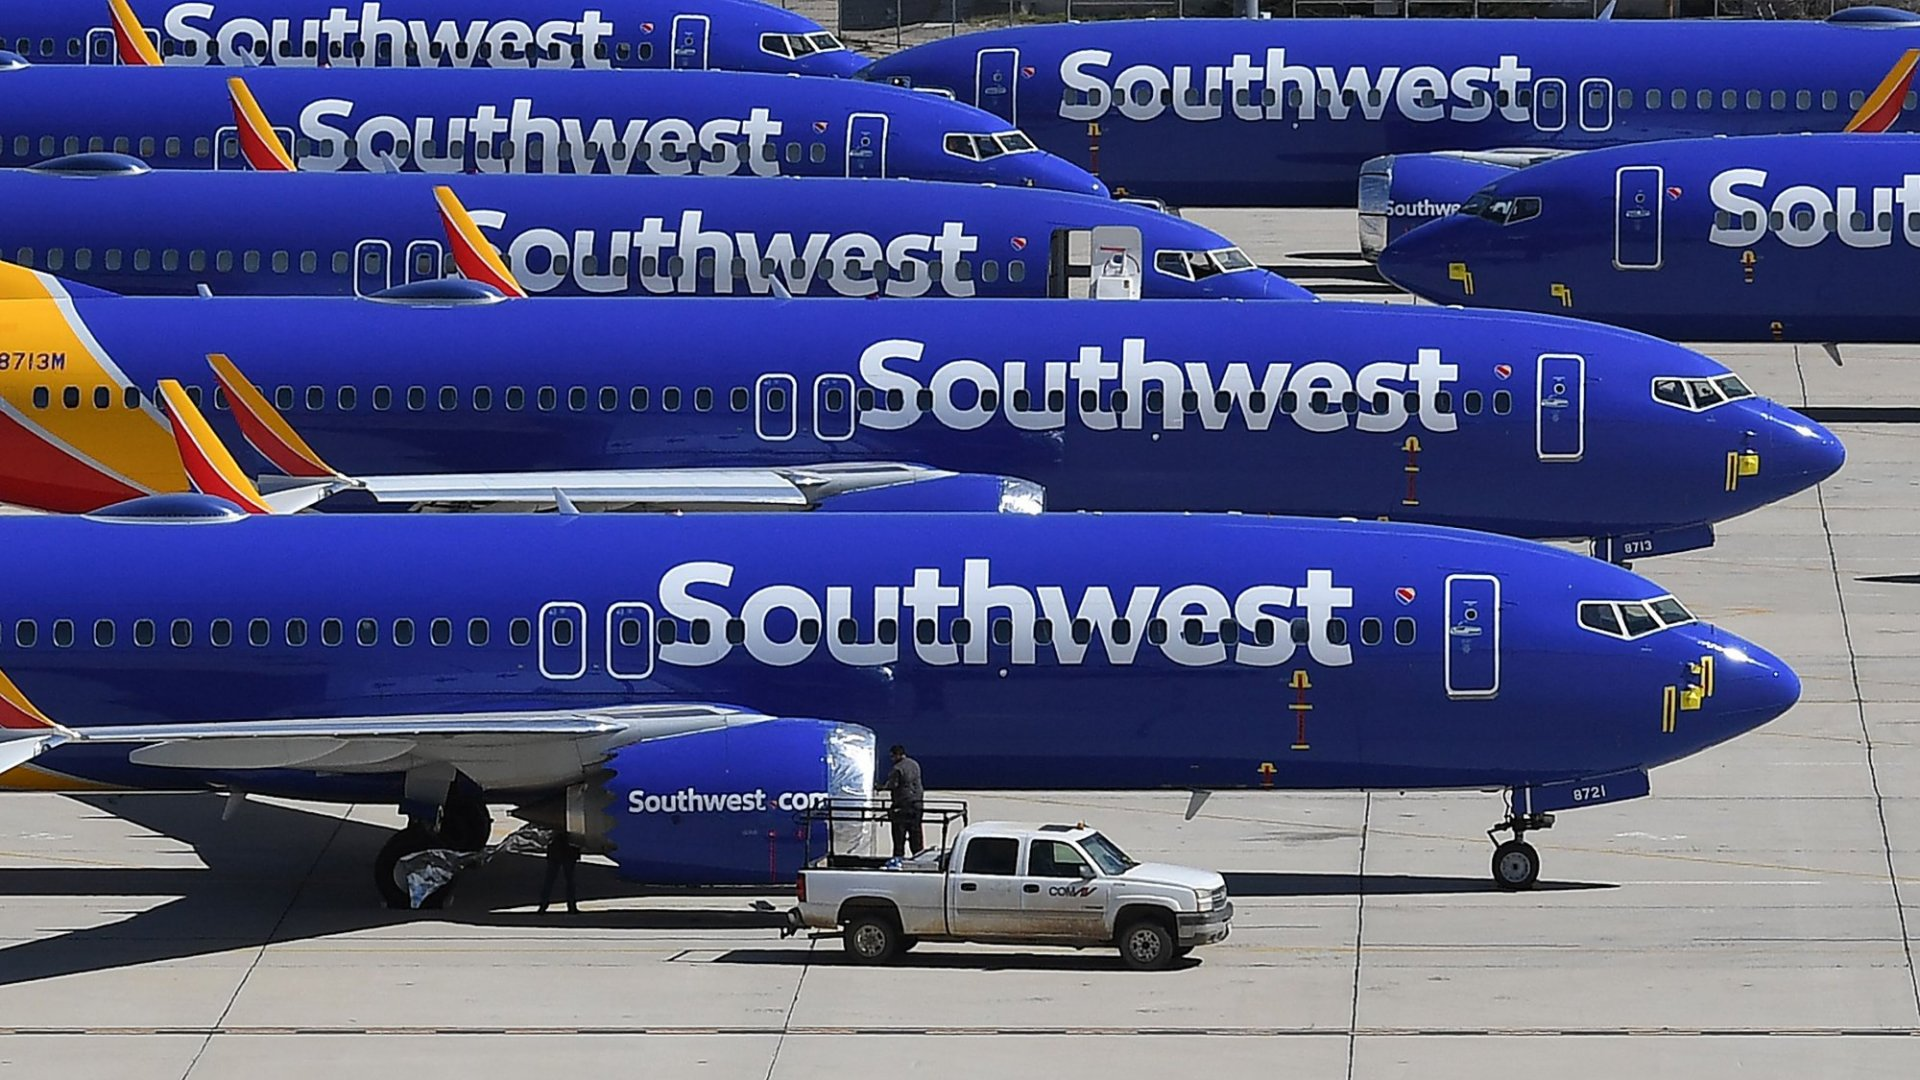 Southwest Airlines Just Got Some Truly Great News. (There's Just 1 Little Catch)